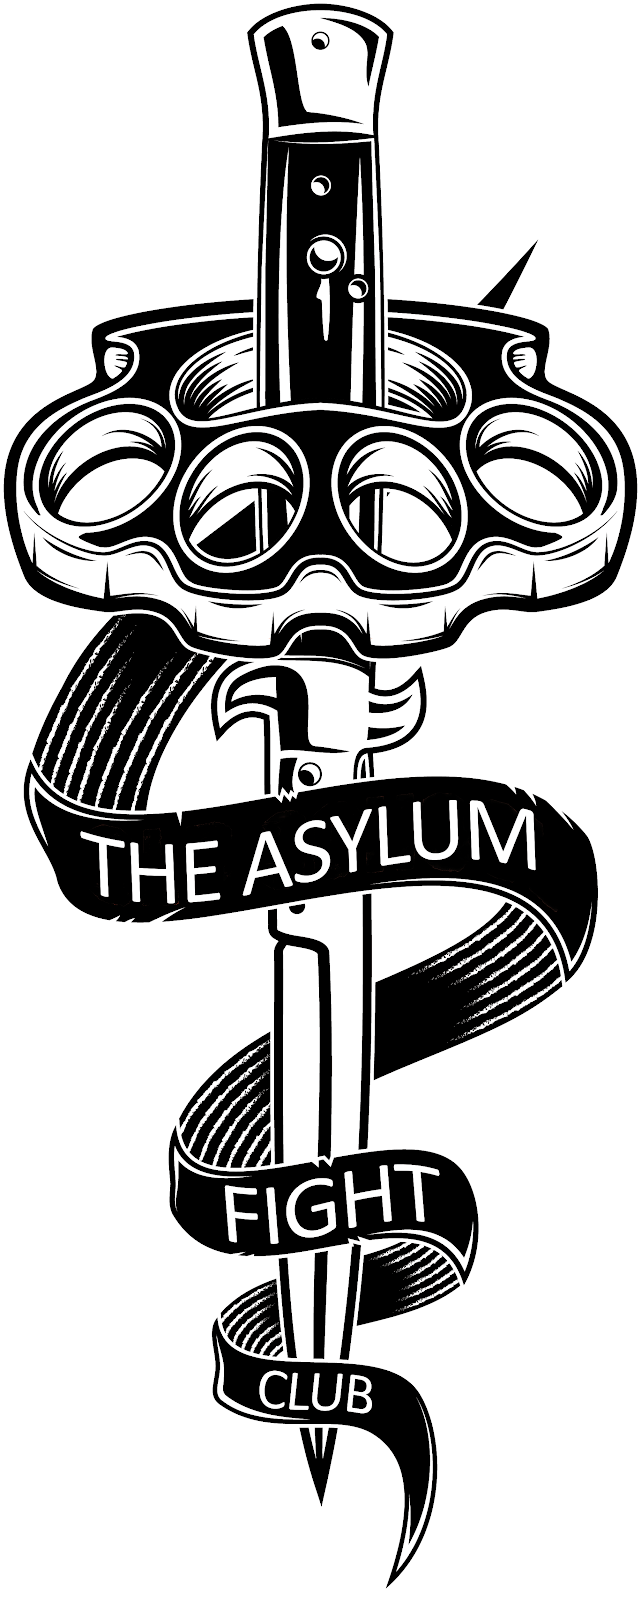 The Asylum Fight Club Website